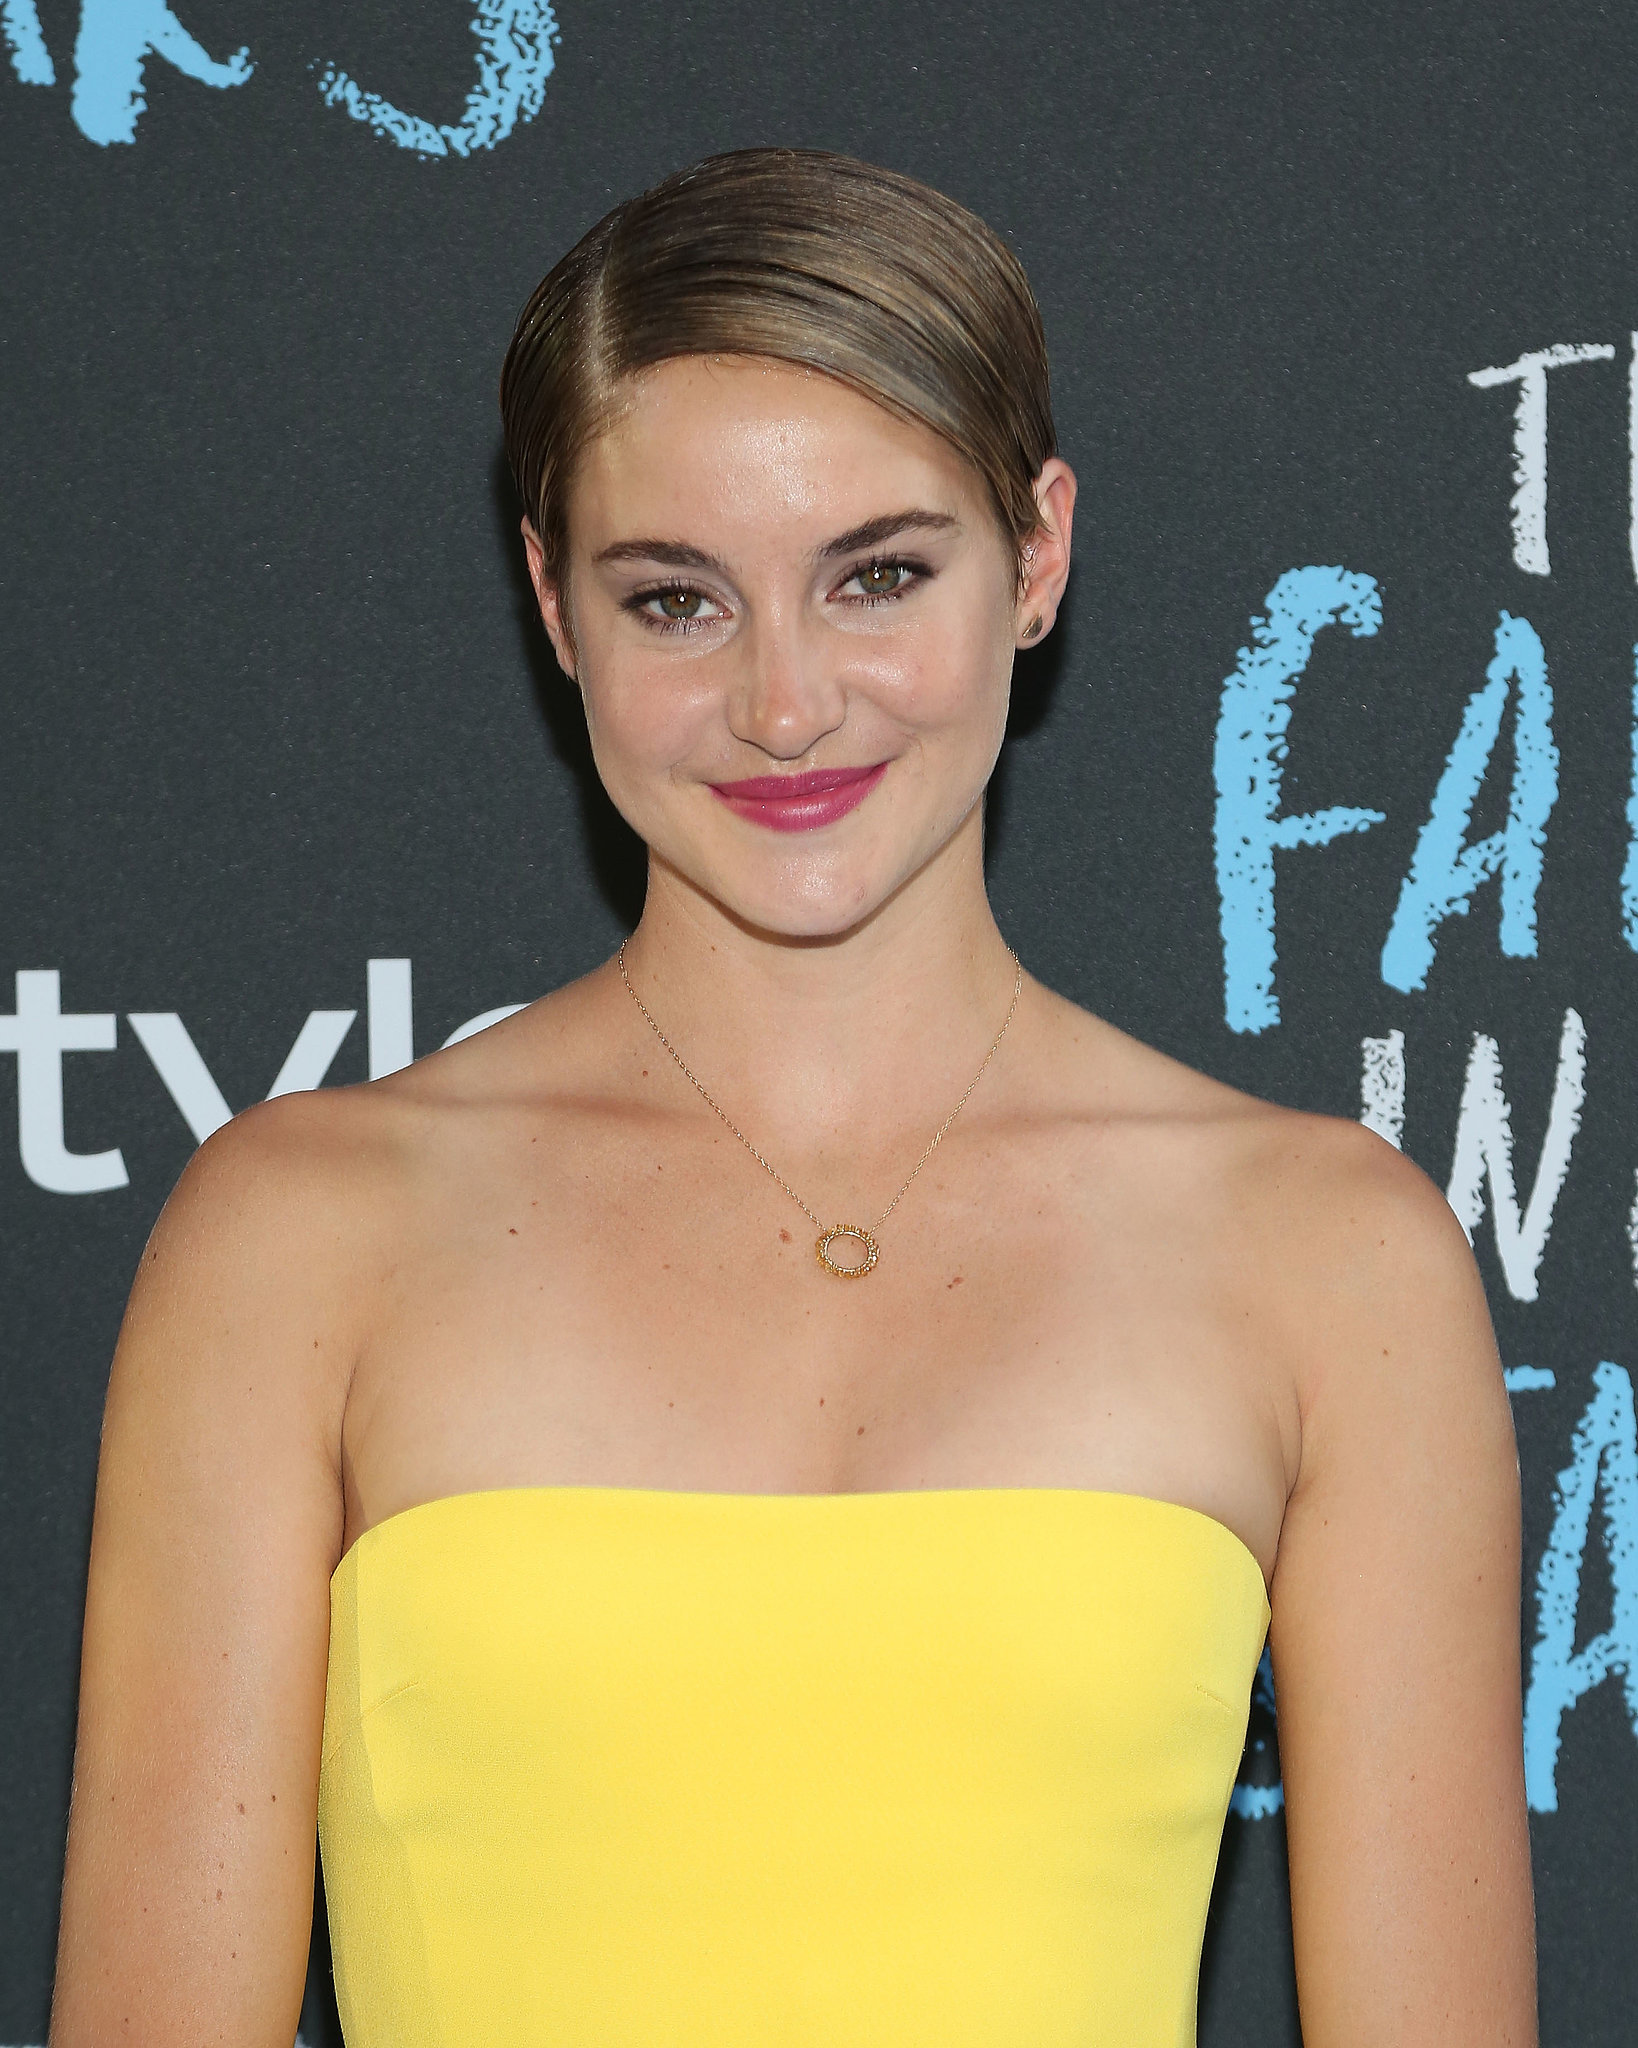 The Fault in Our Stars Cast Reveals Their Favorite Scenes